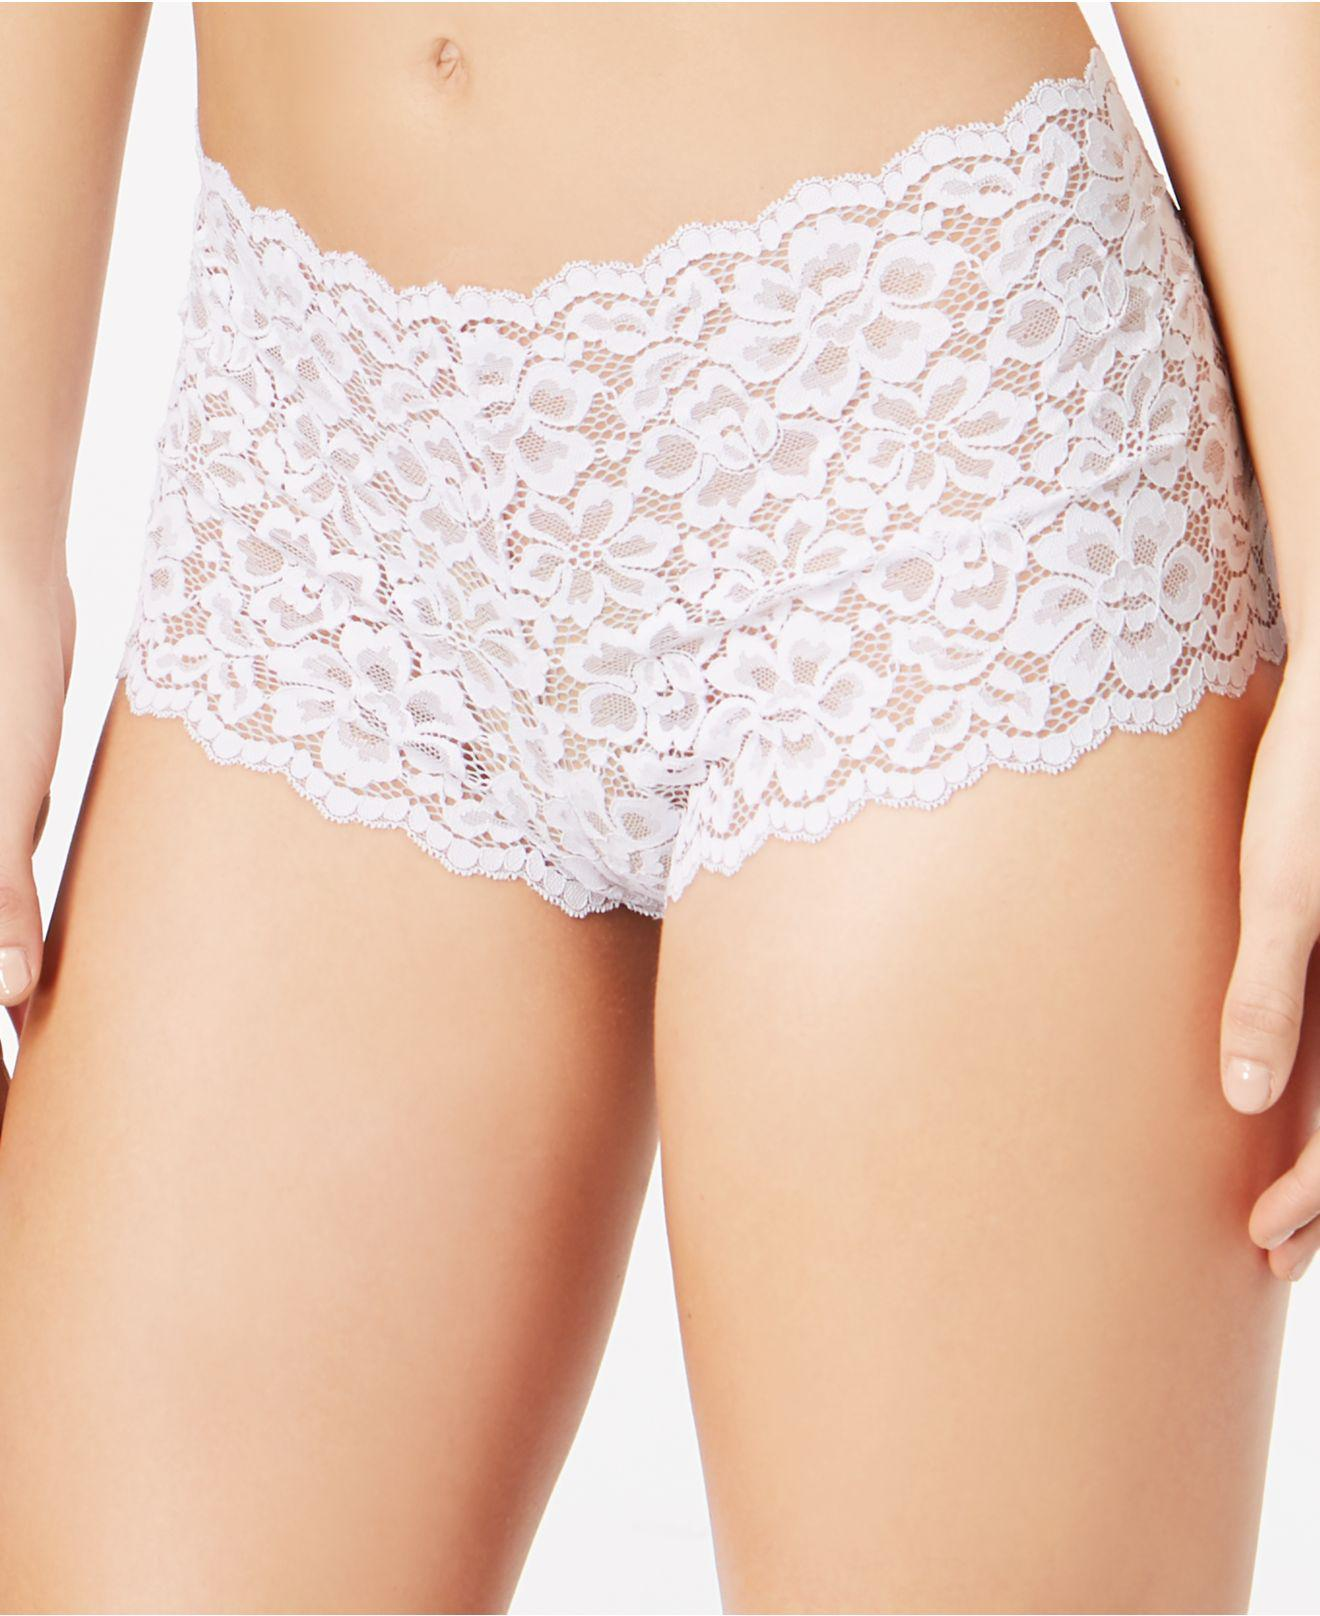 0e5a0f3d919f6 Lyst - Maidenform Casual Comfort Lace Boyshort Dmclbs in White